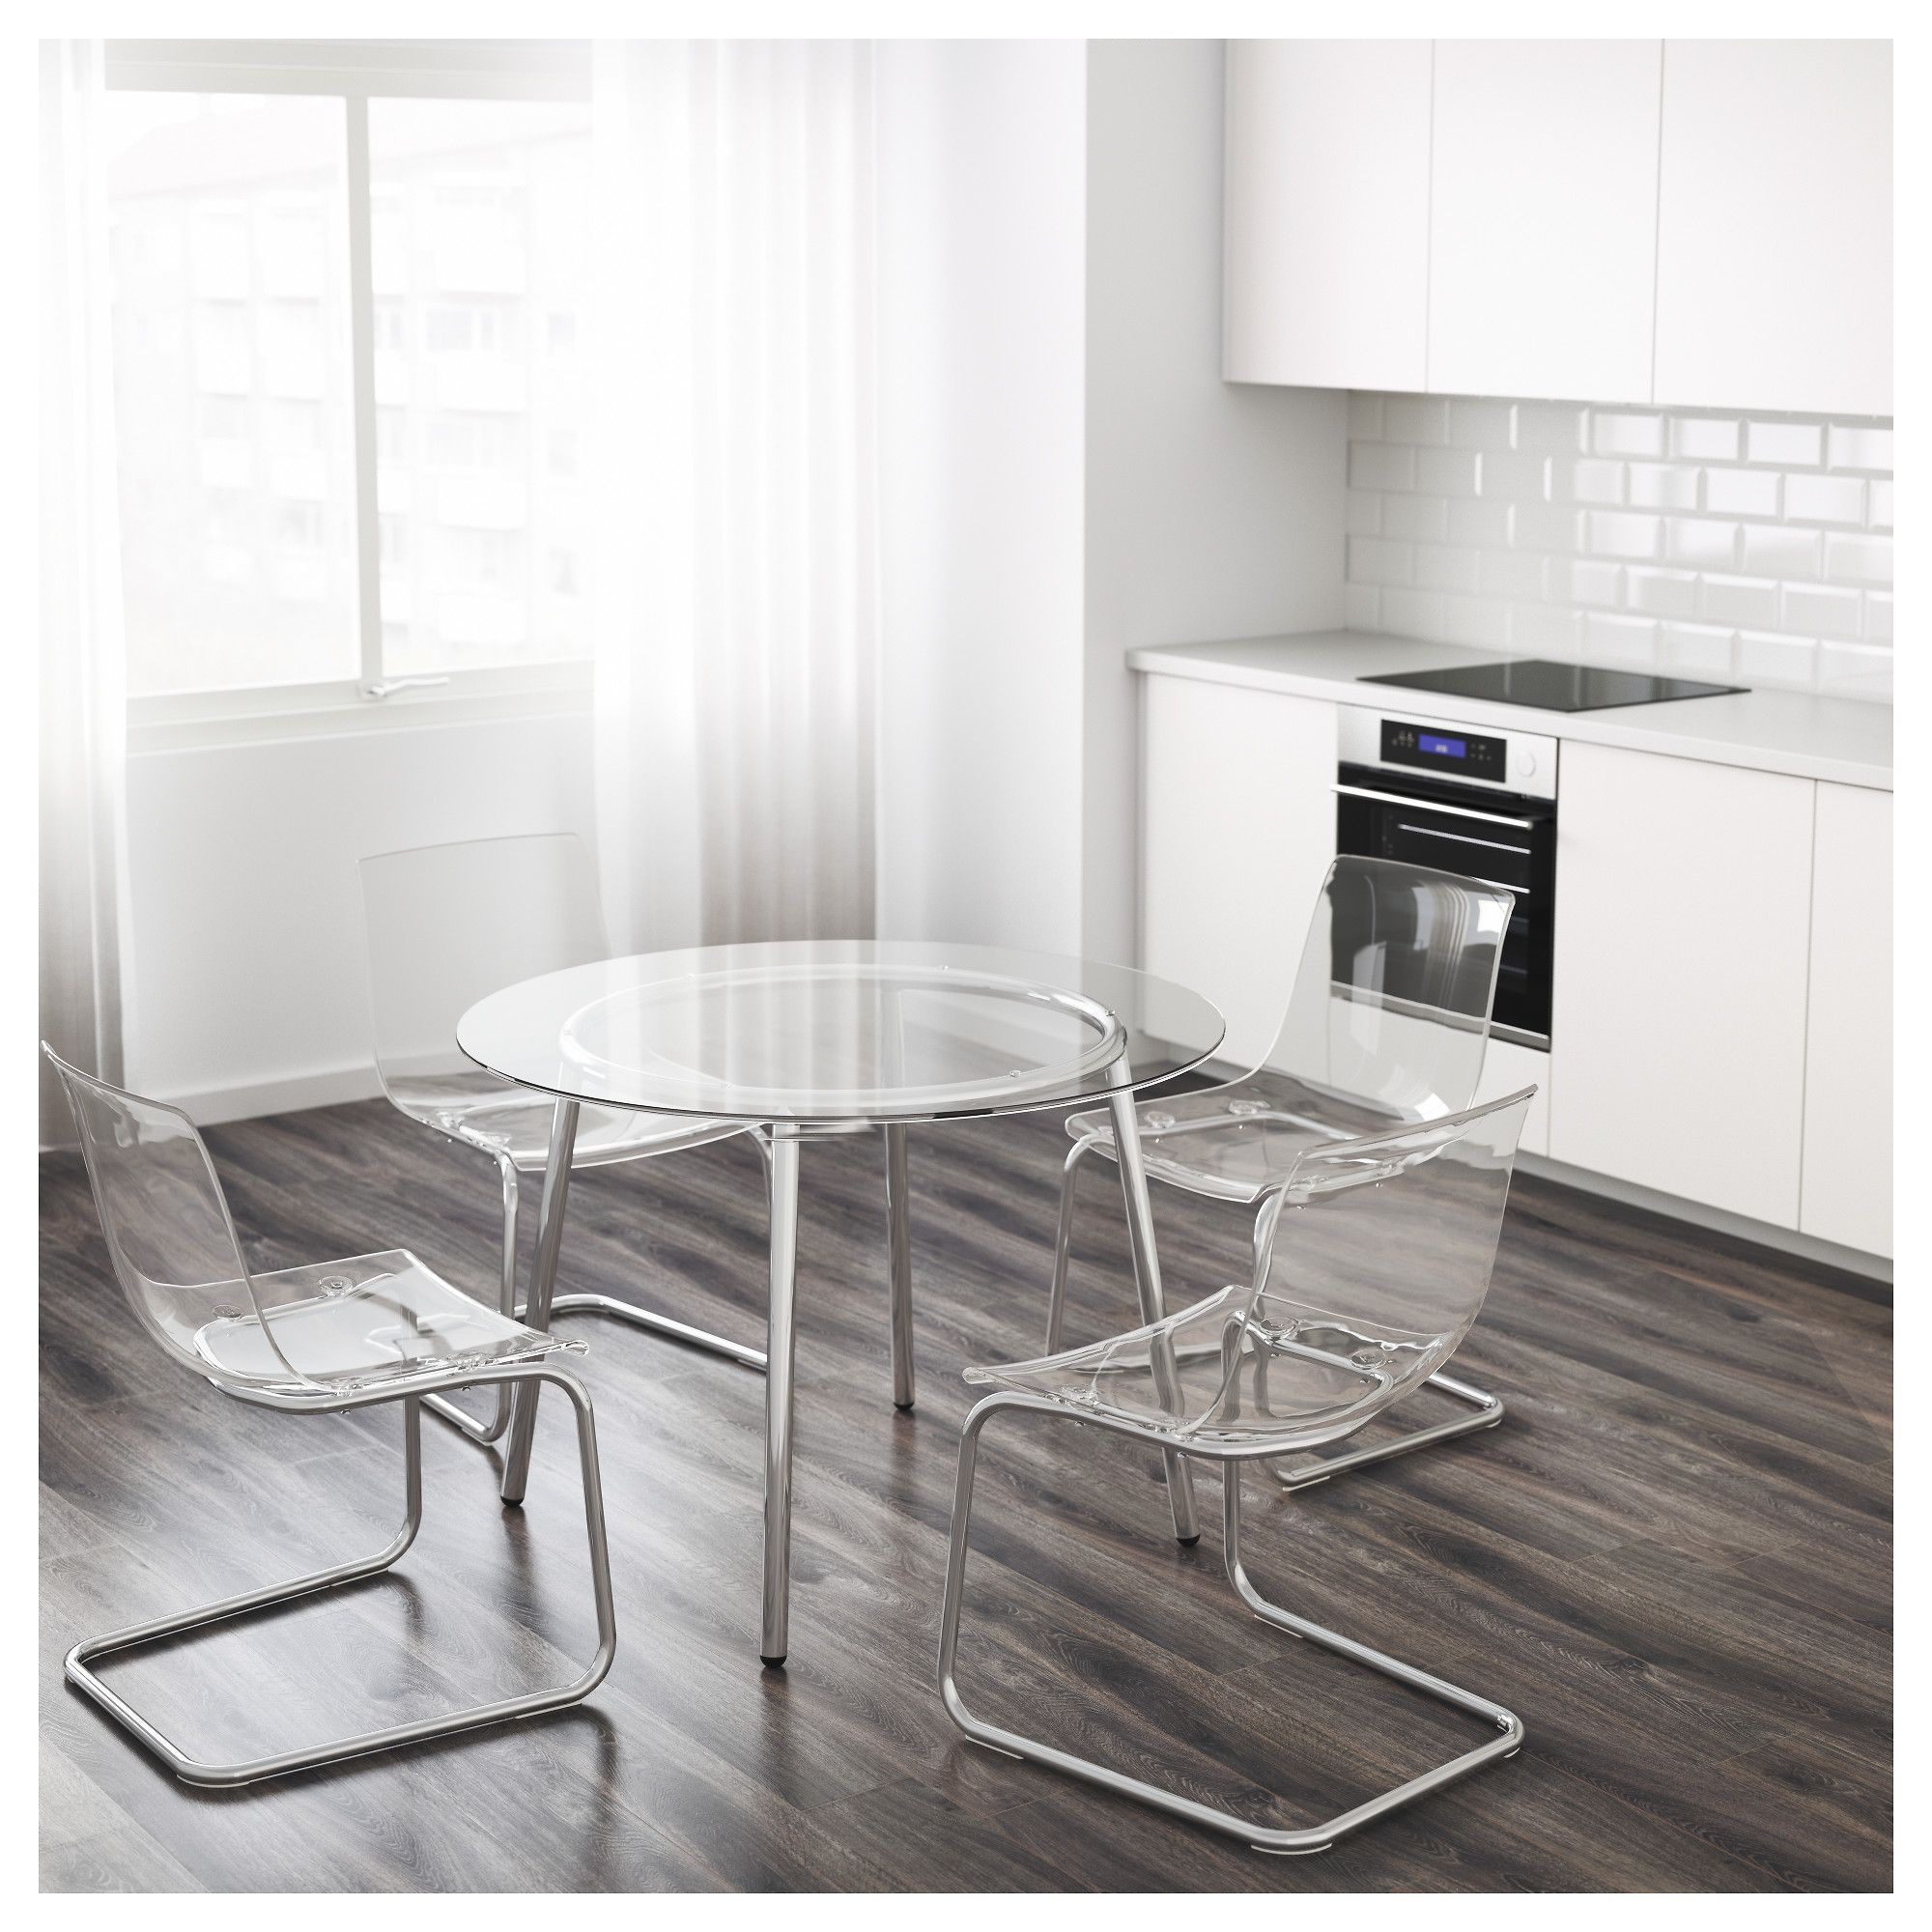 Furniture Home Furnishings Find Your Inspiration Affordable Furniture Furniture Round Table And Chairs